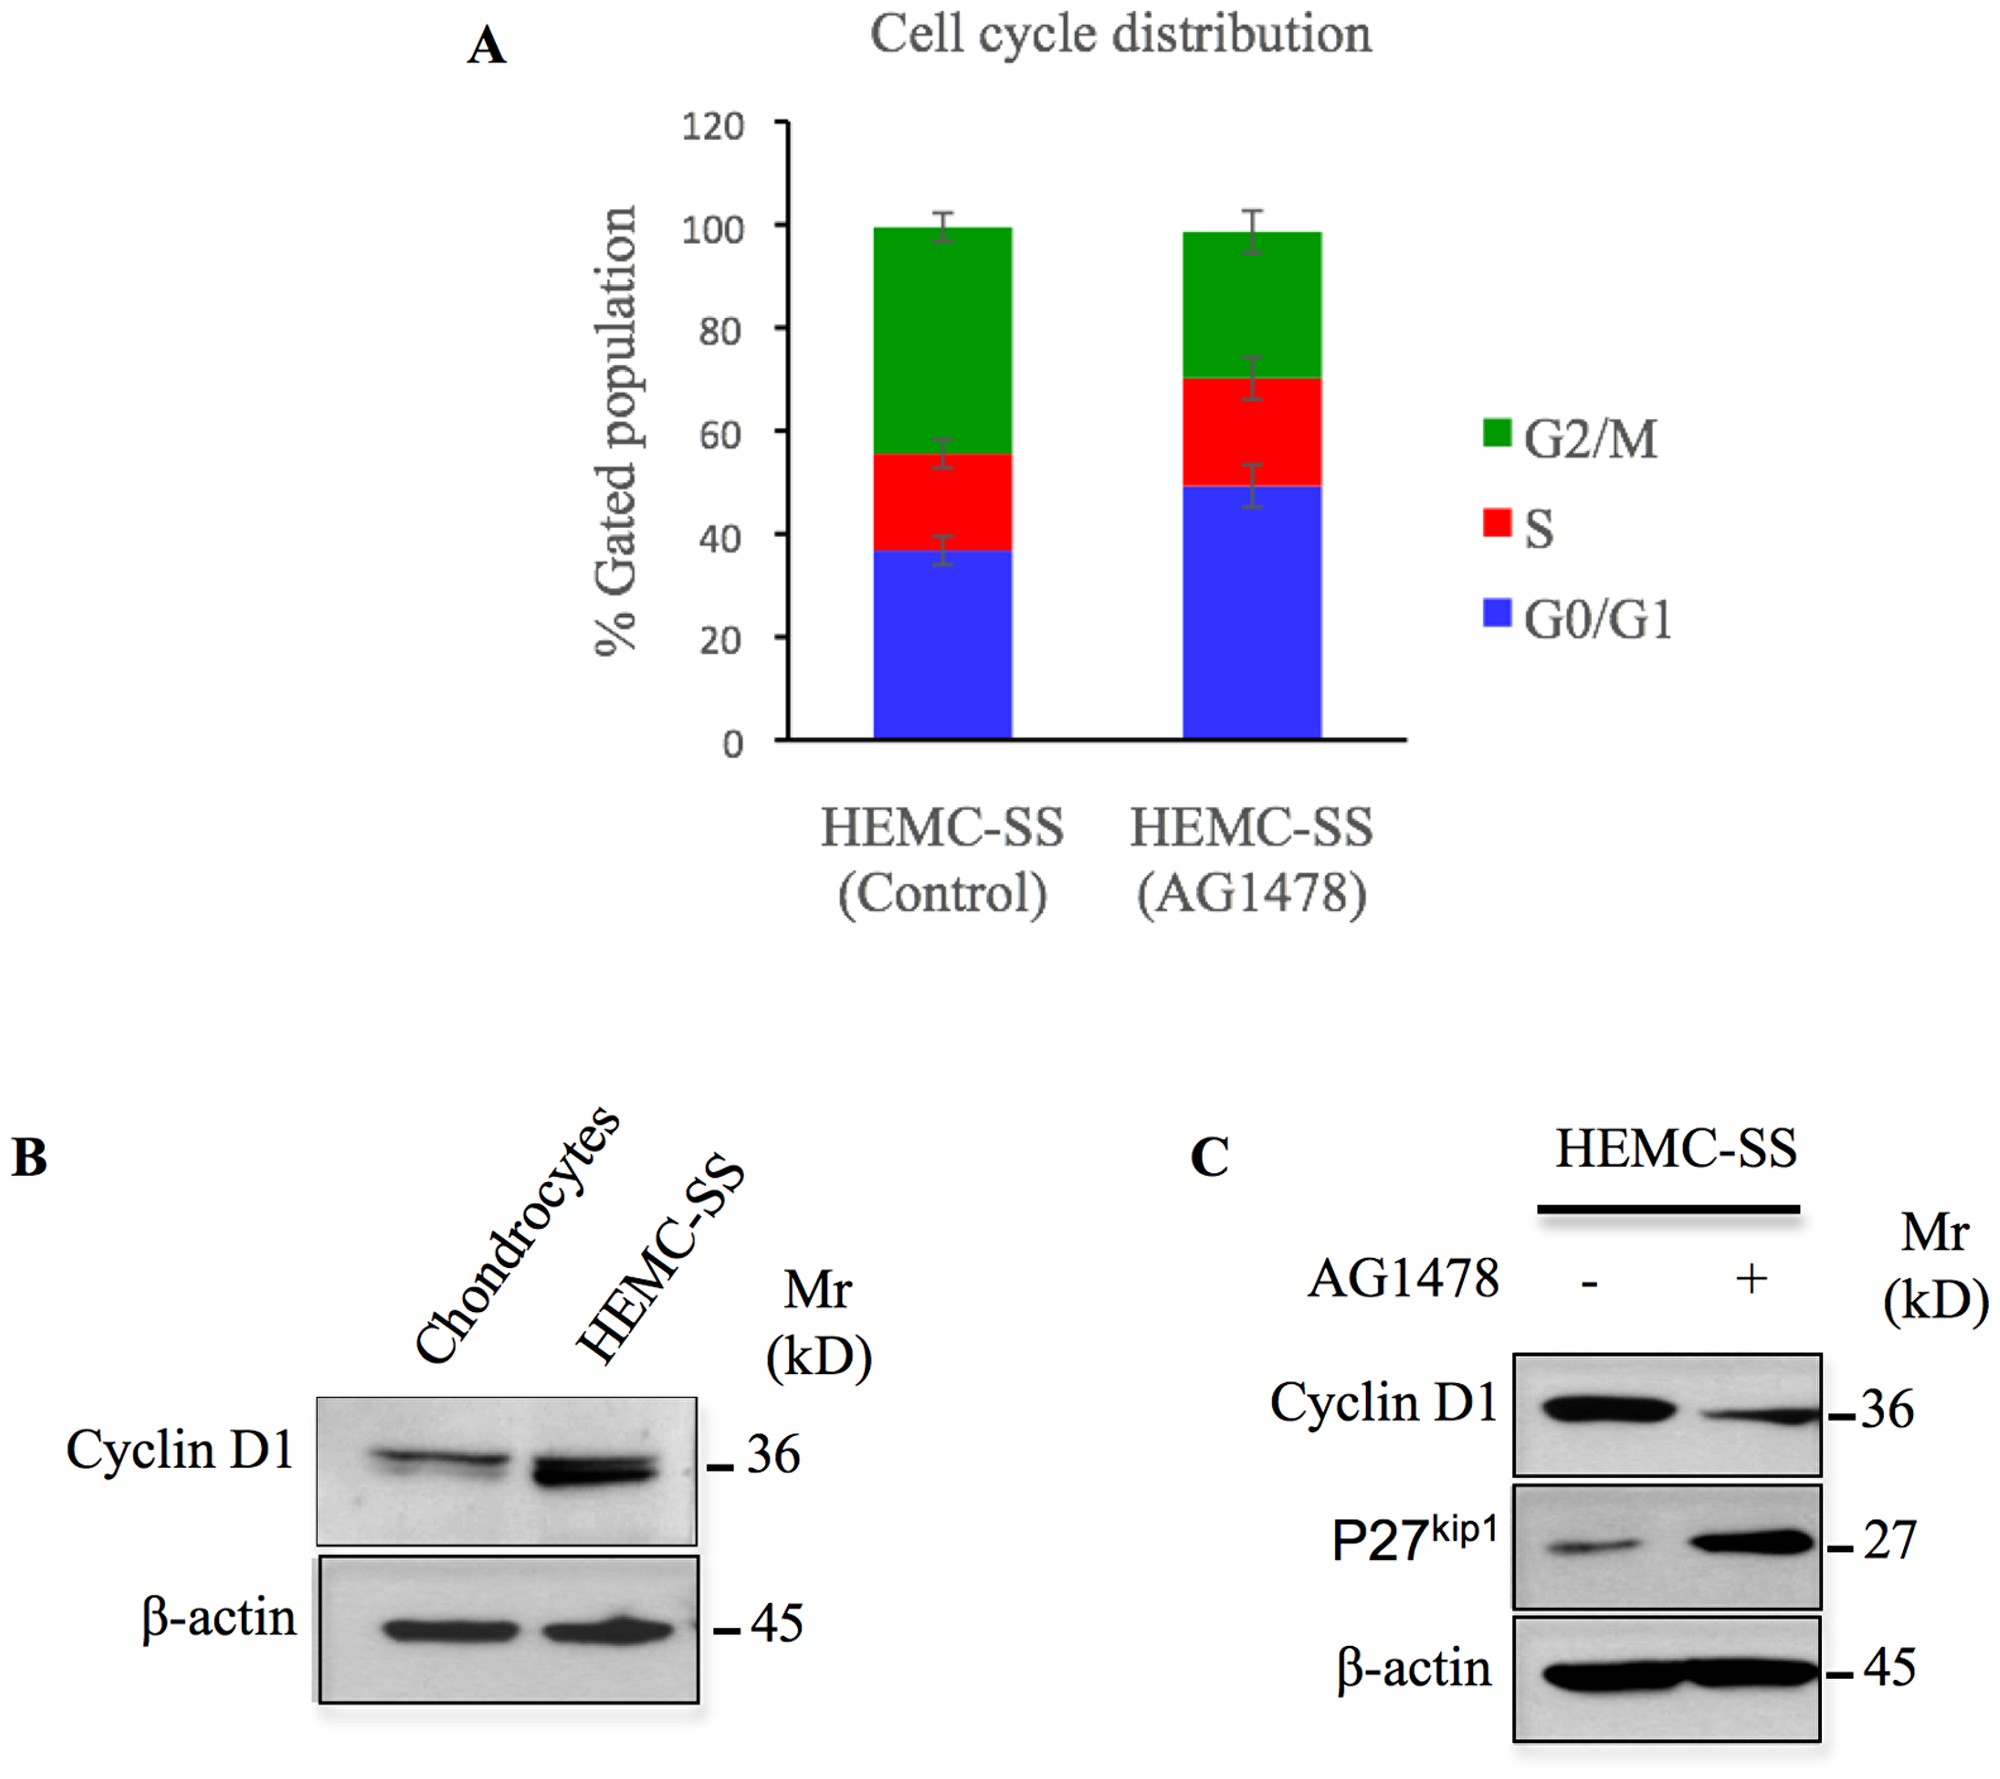 AG1478 produces cell cycle arrest, induces p27 and inhibits cyclin D1 in chondrosarcoma cells.